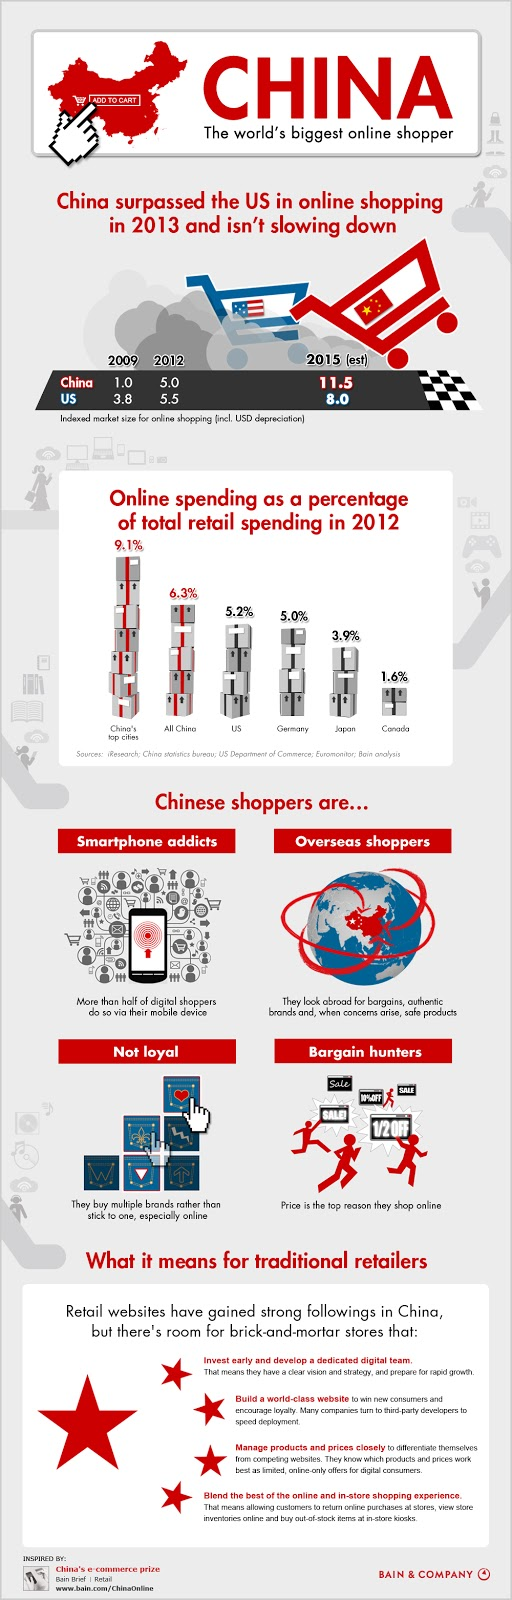 "making of "" china's success story in ecommerce"""